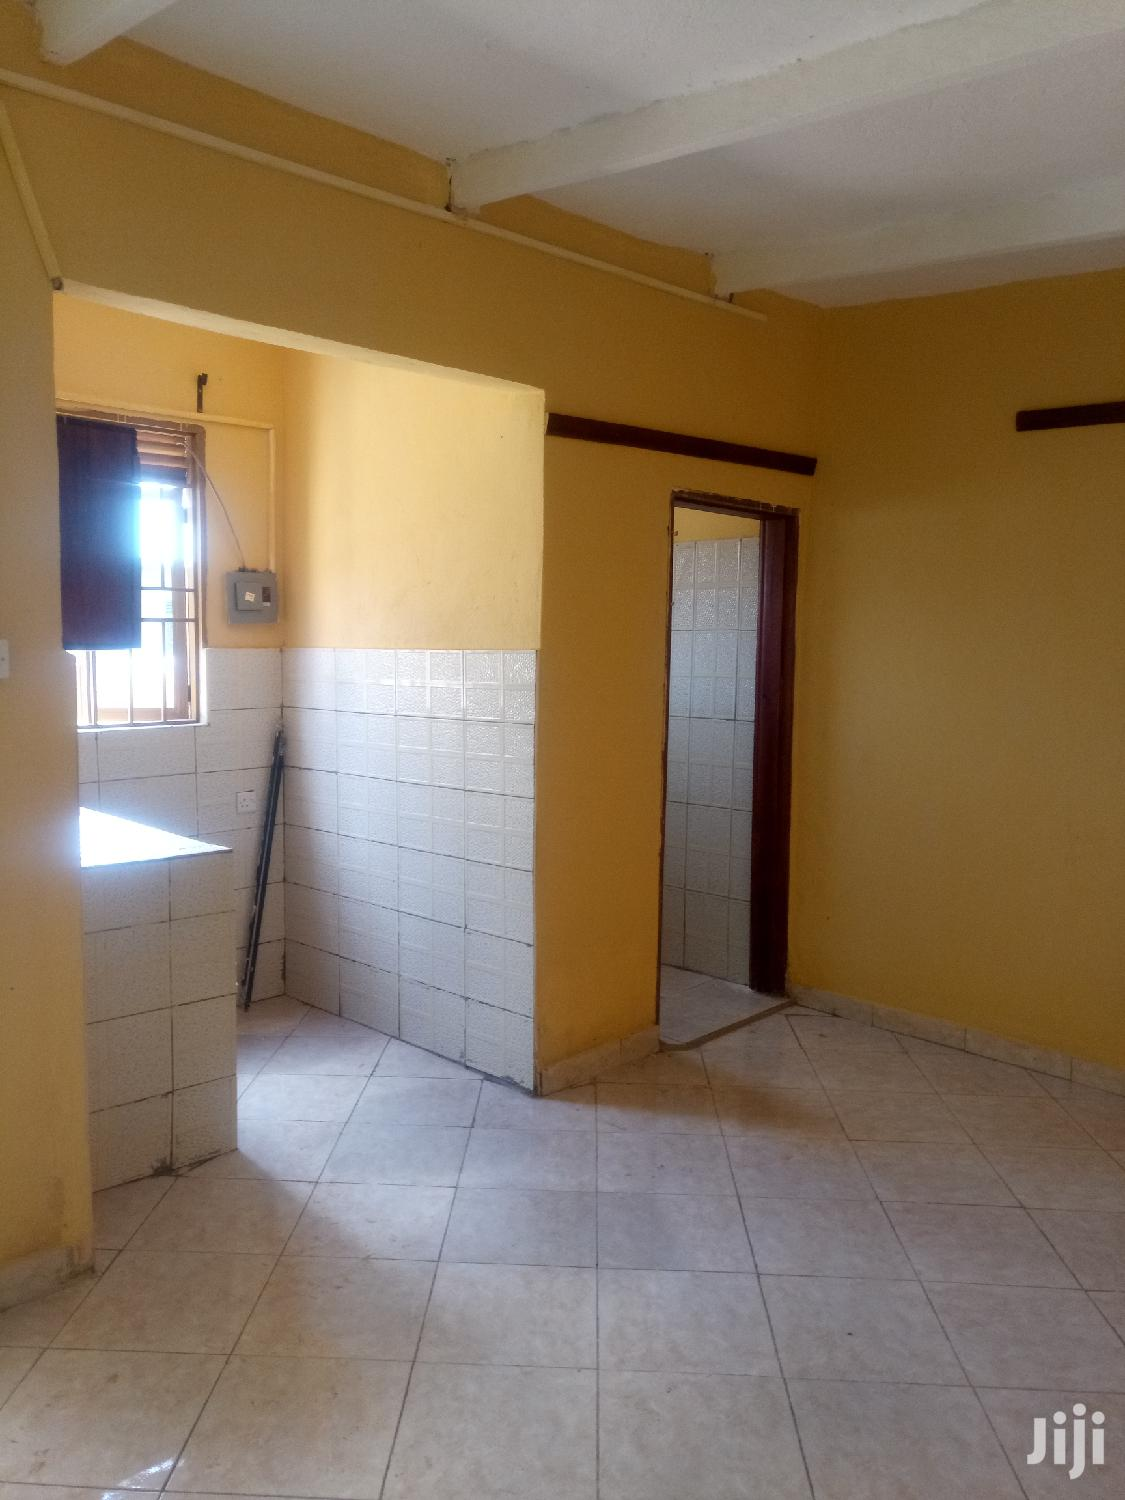 Mutungo Big Studio Single Room House for Rent | Houses & Apartments For Rent for sale in Kampala, Central Region, Uganda